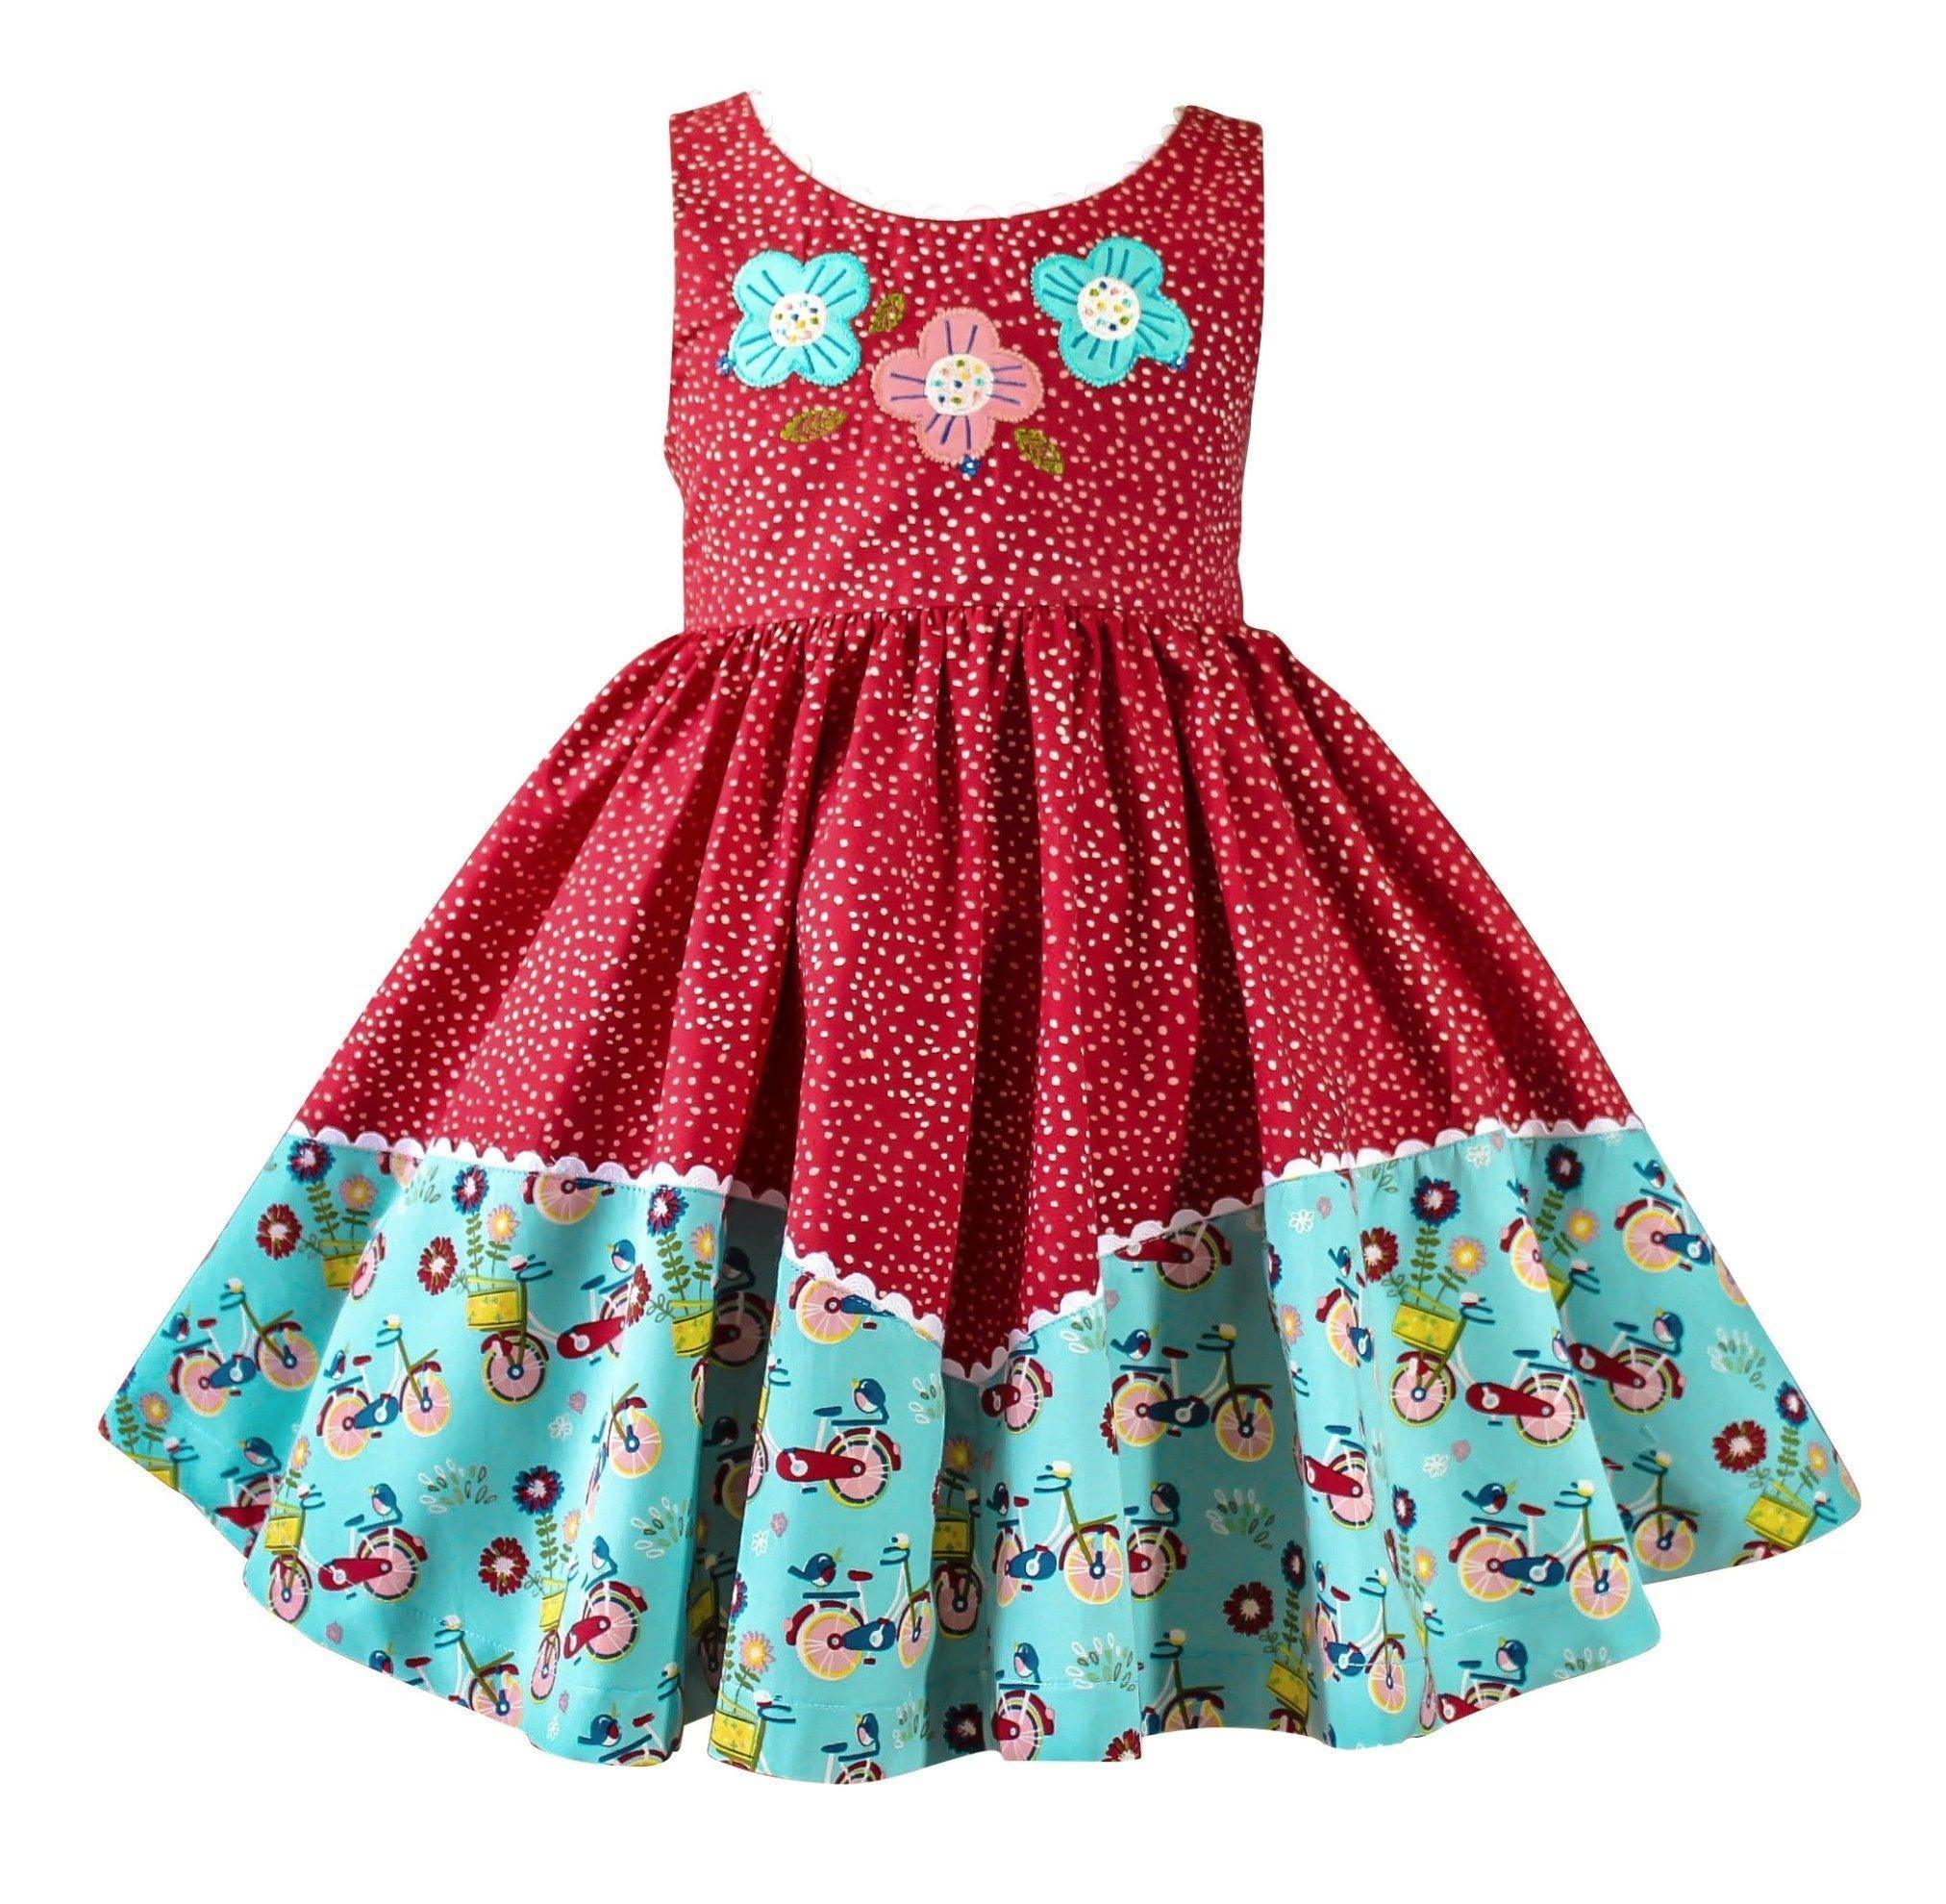 92676be8f00 Girls Dress - Joy Ride Red Dolores Park Vintage Dress · Little Miss ...